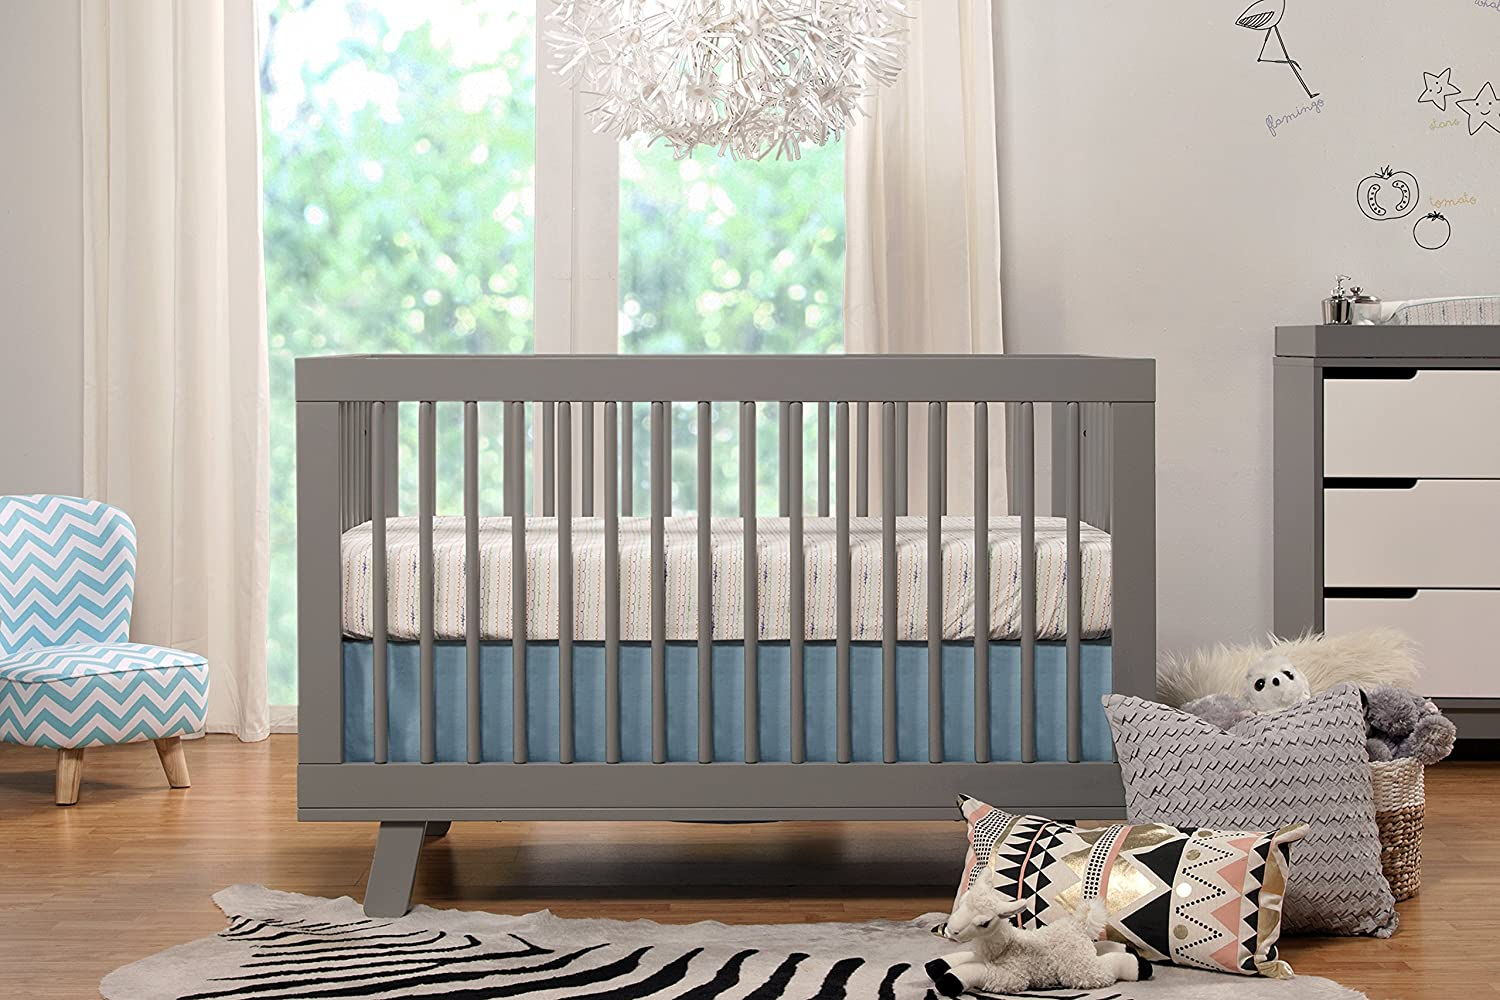 Baby cribs kijiji calgary - Babyletto Hudson 3 In 1 Convertible Crib With Toddler Rail Grey Amazon Ca Baby